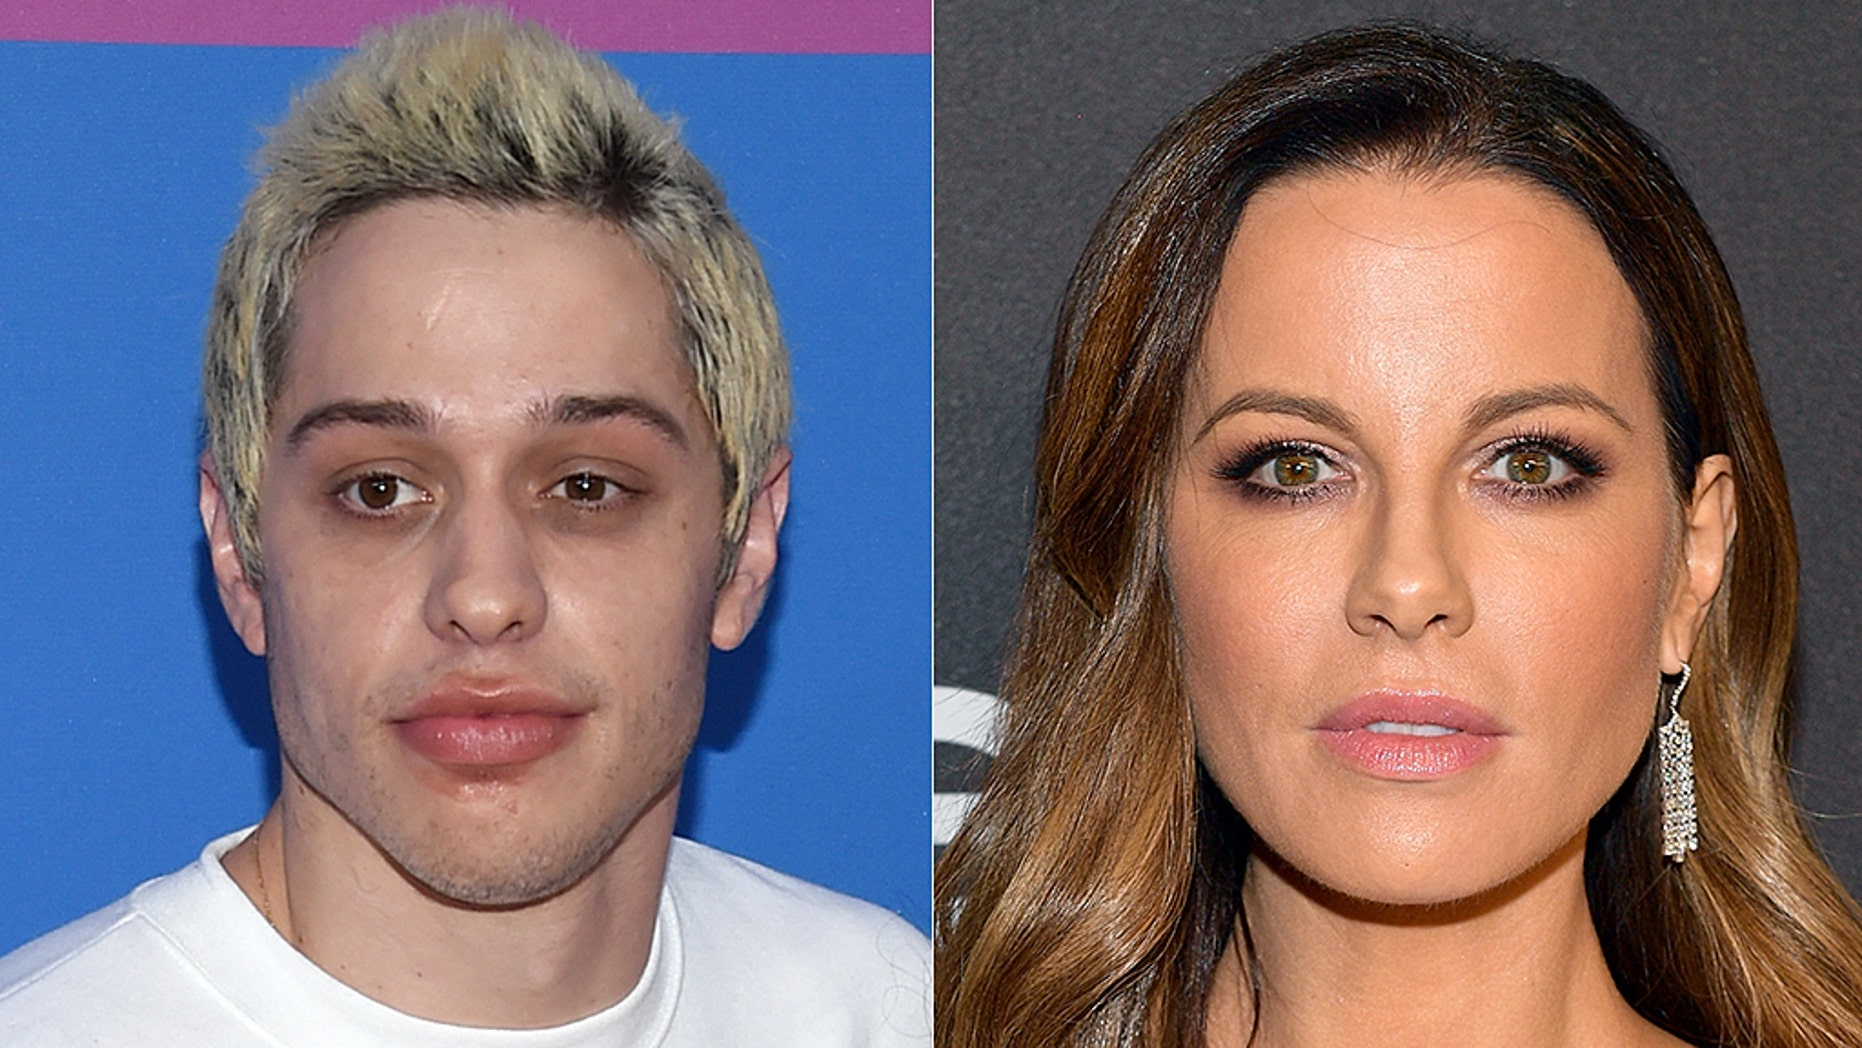 Pete Davidson and actress Kate Beckinsale reportedly left together following a Golden Globes party.